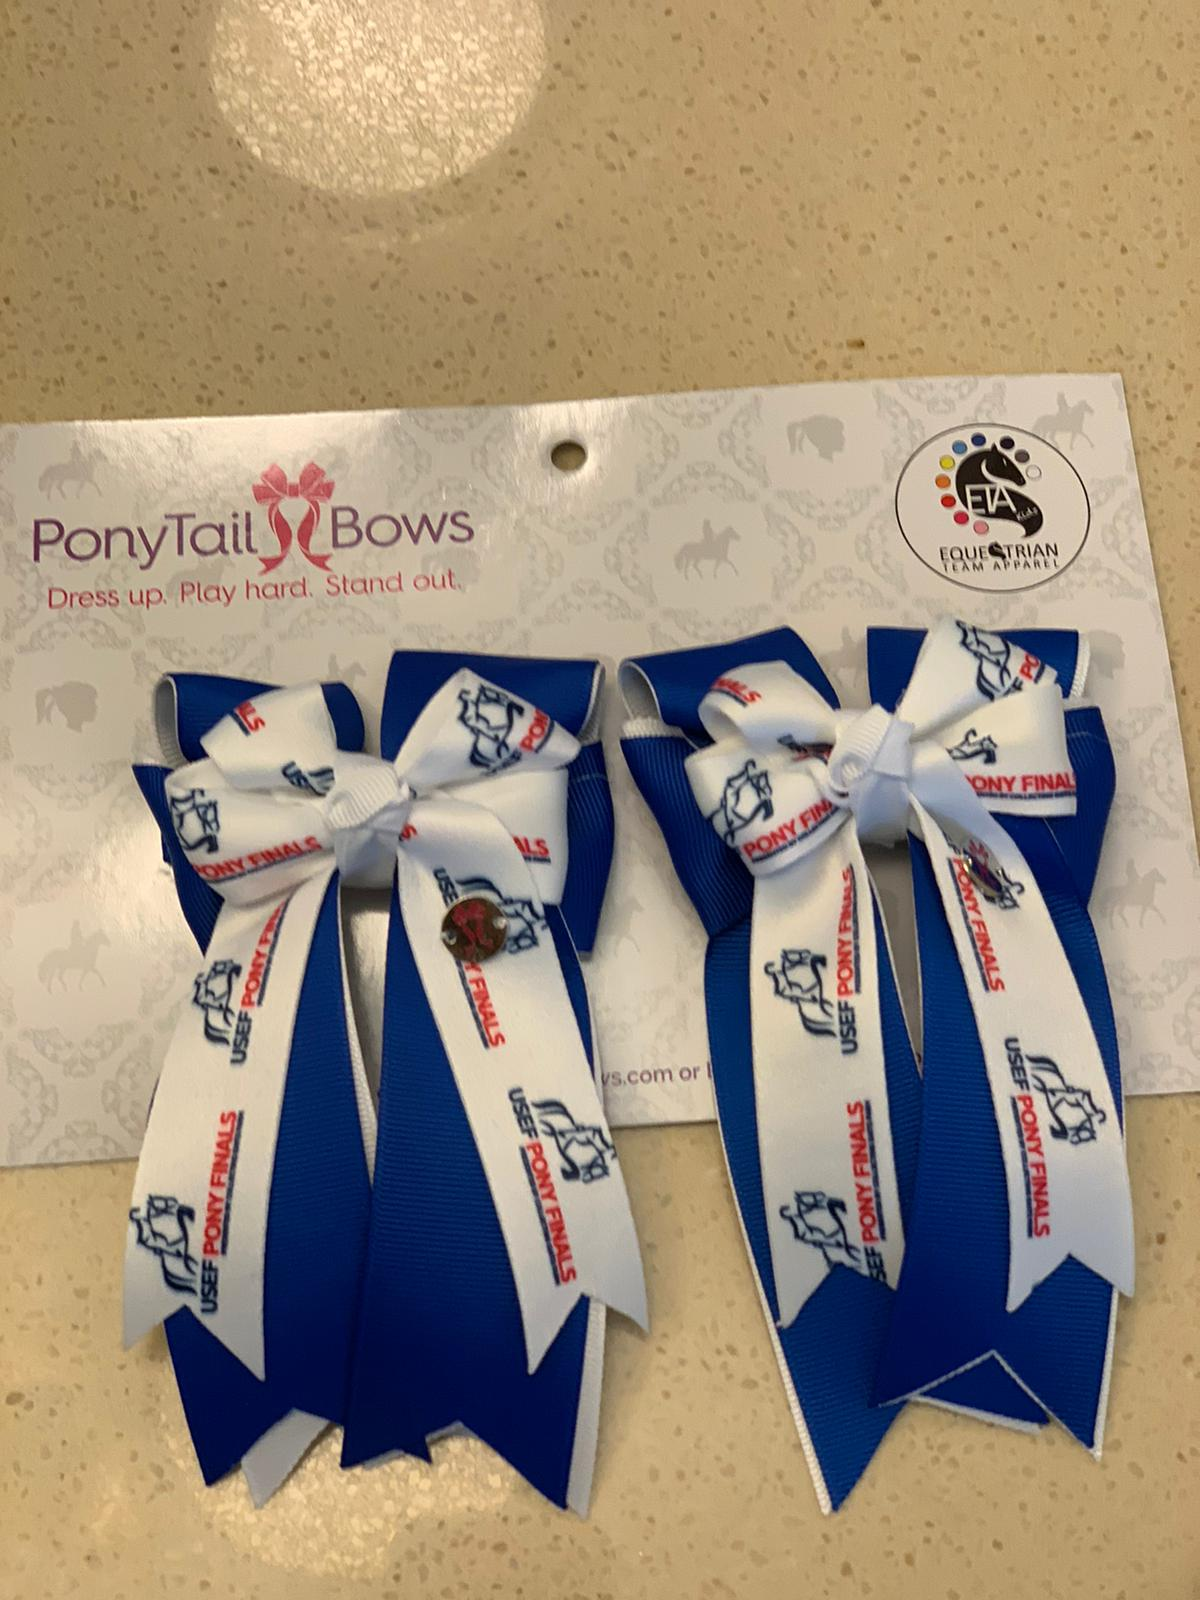 "Ponytail Bows 3"" Tails PF Royal Show Bows equestrian team apparel online tack store mobile tack store custom farm apparel custom show stable clothing equestrian lifestyle horse show clothing riding clothes horses equestrian tack store"